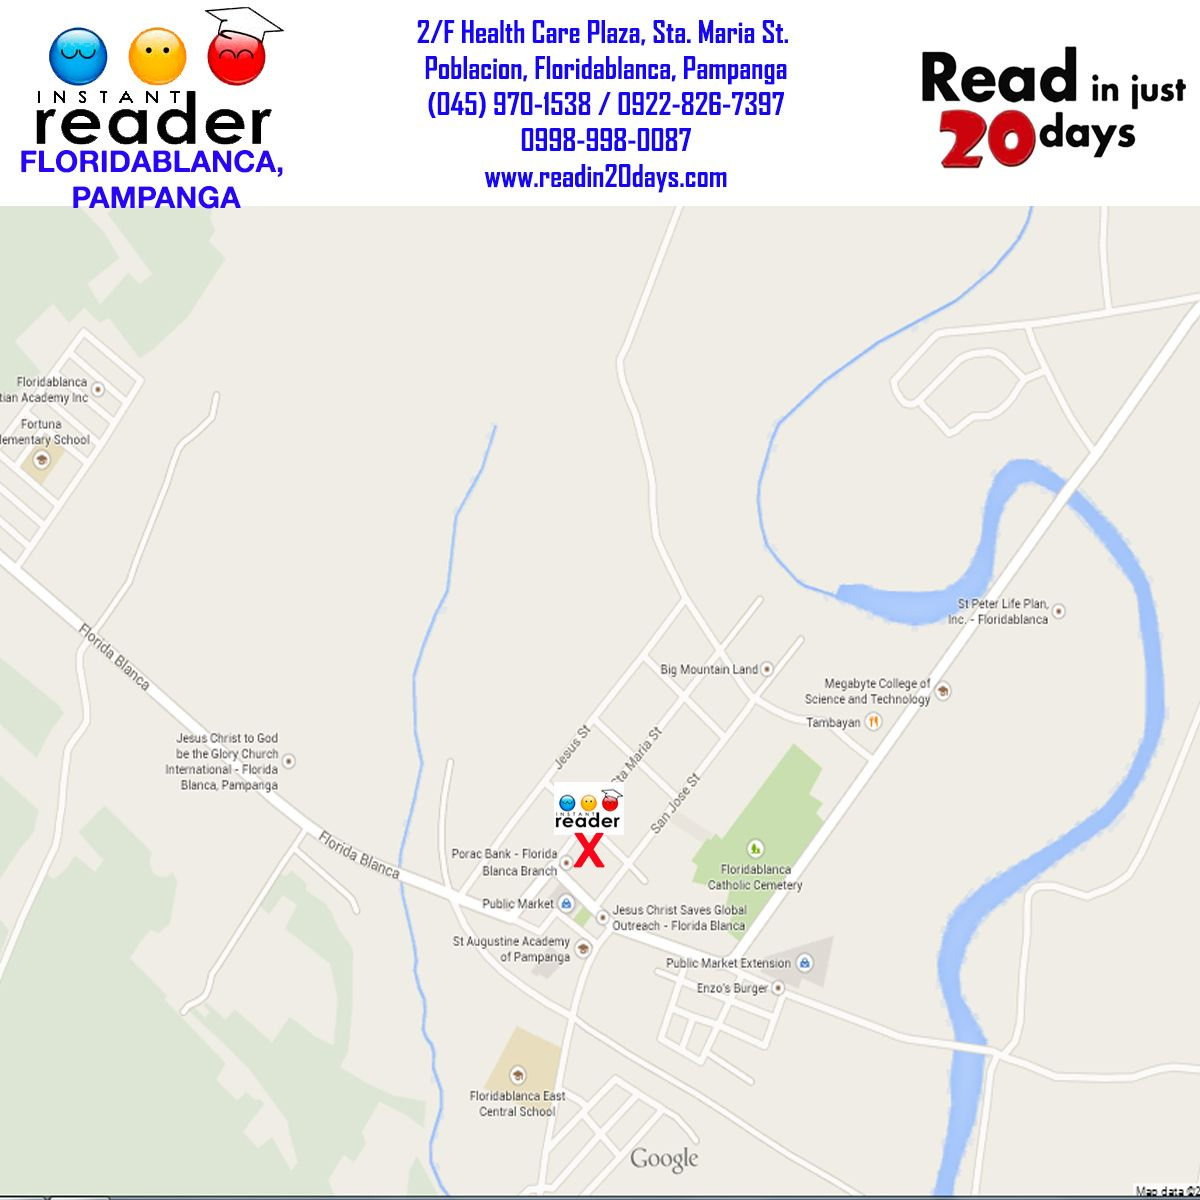 Floridablanca Pampanga Center Map Pat Domingo Center Manager Patvdomingo Yahoo Com Eduardo M Domingo Center Supervisor 2 F Healt Location Map Map Readers